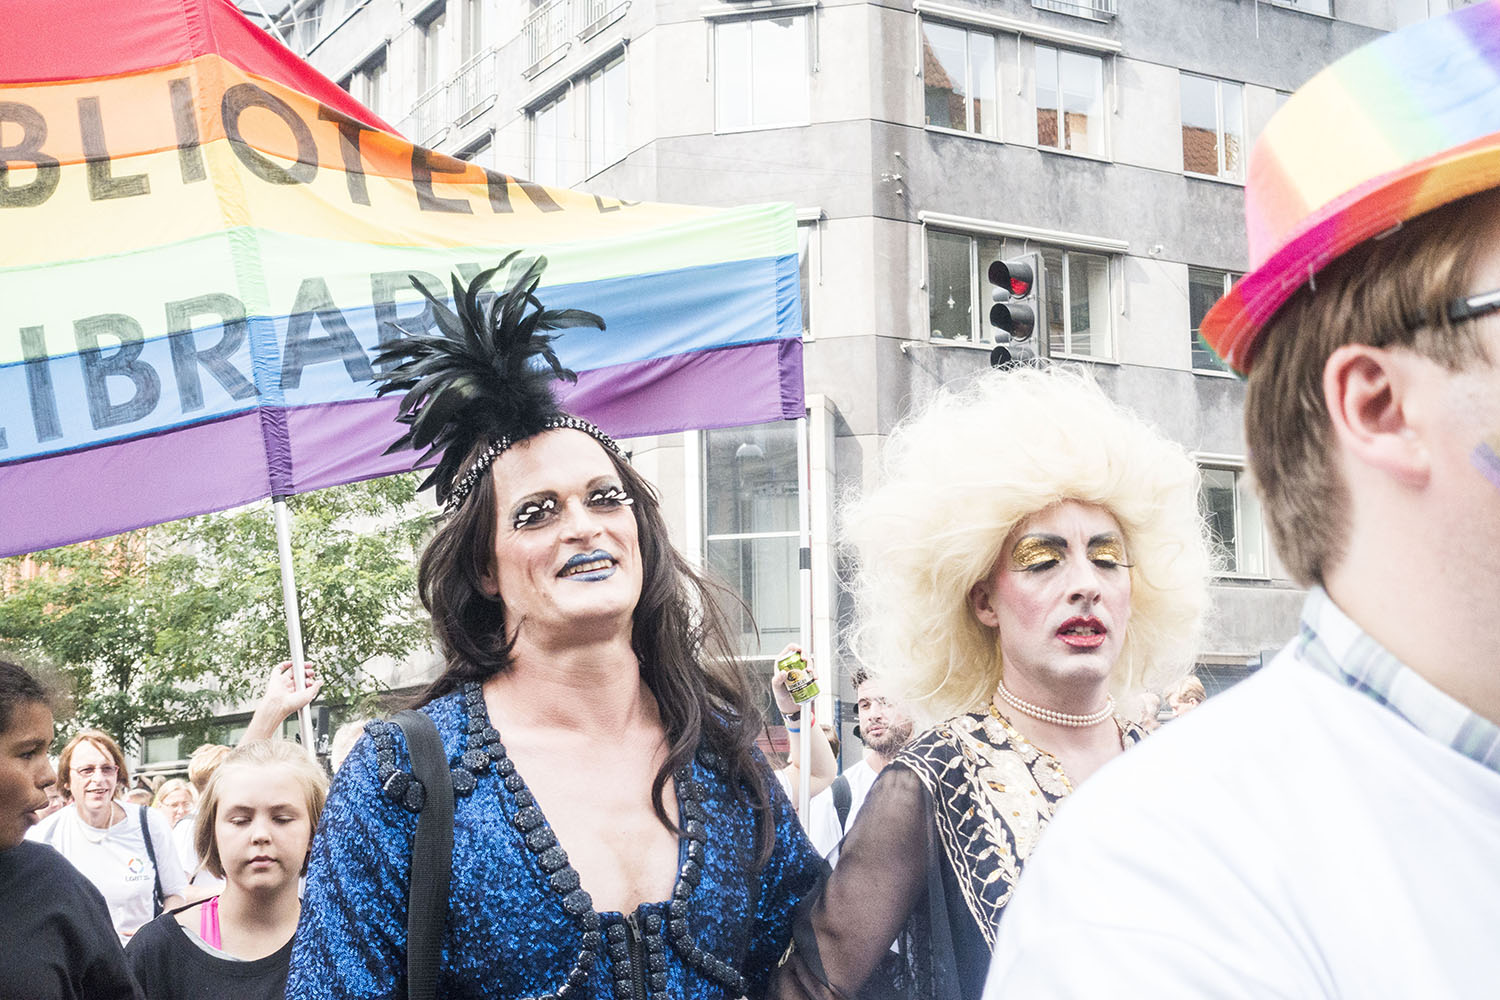 CphPride2016_HelenaLundquist_blog_25